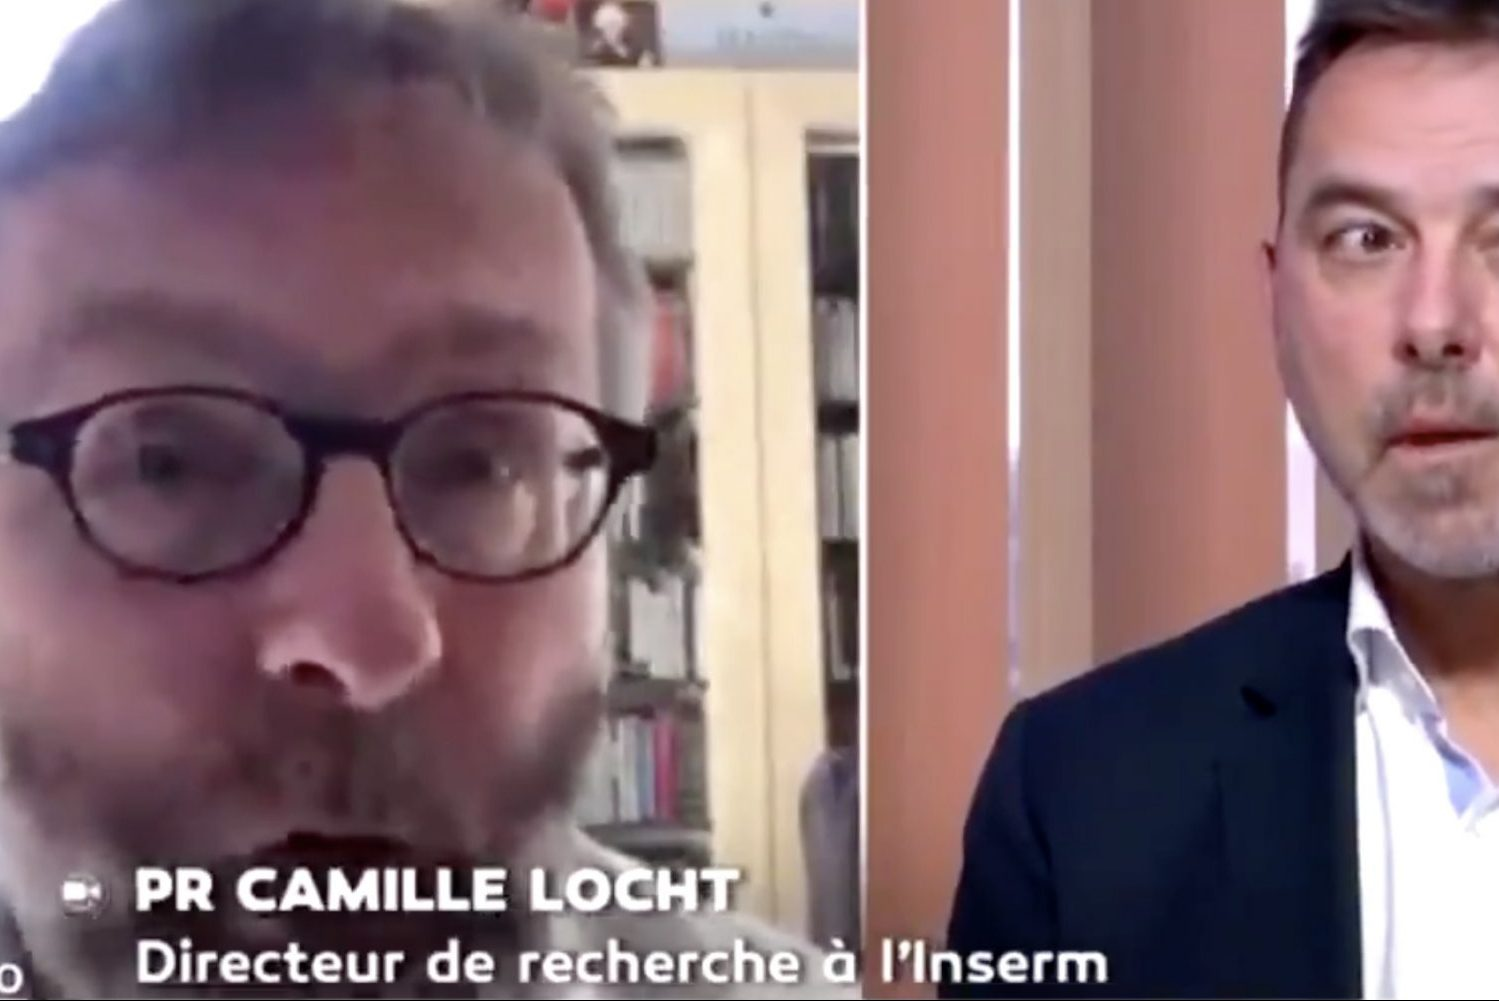 An interview with Dr. Camille Locht in which he suggested using Africans as lab rats to test for COVID-19 vaccines.